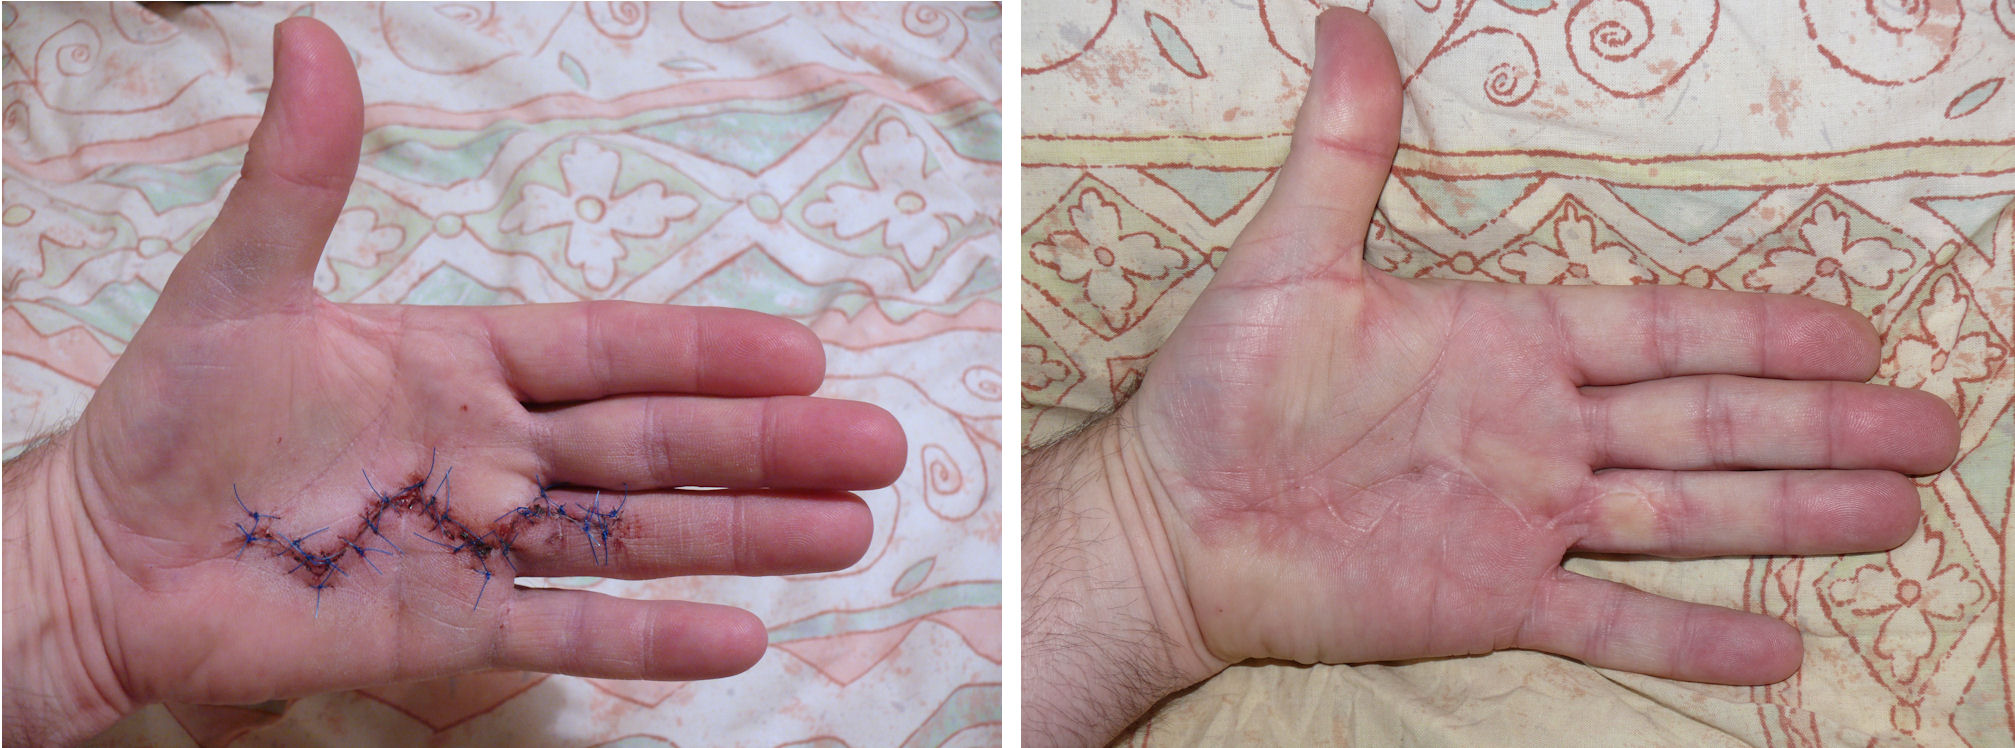 Hand Surgery Dupuytren's Contracture